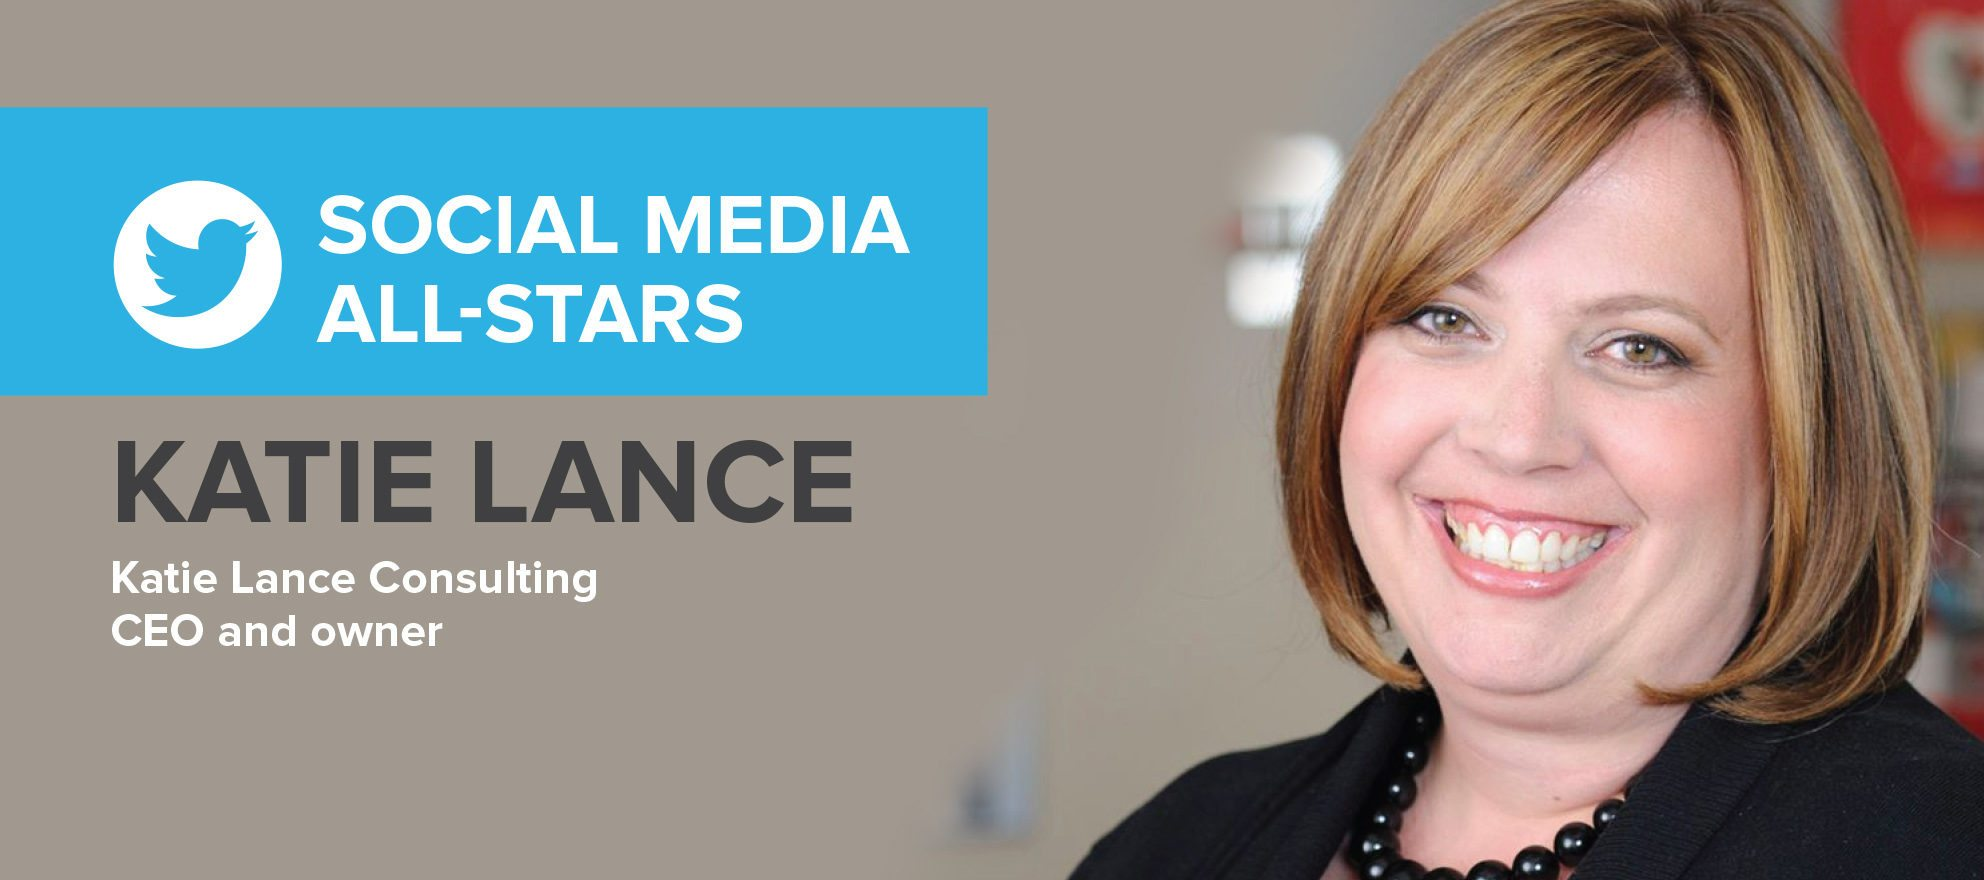 Katie Lance: 'Social media is like being at a dinner party'